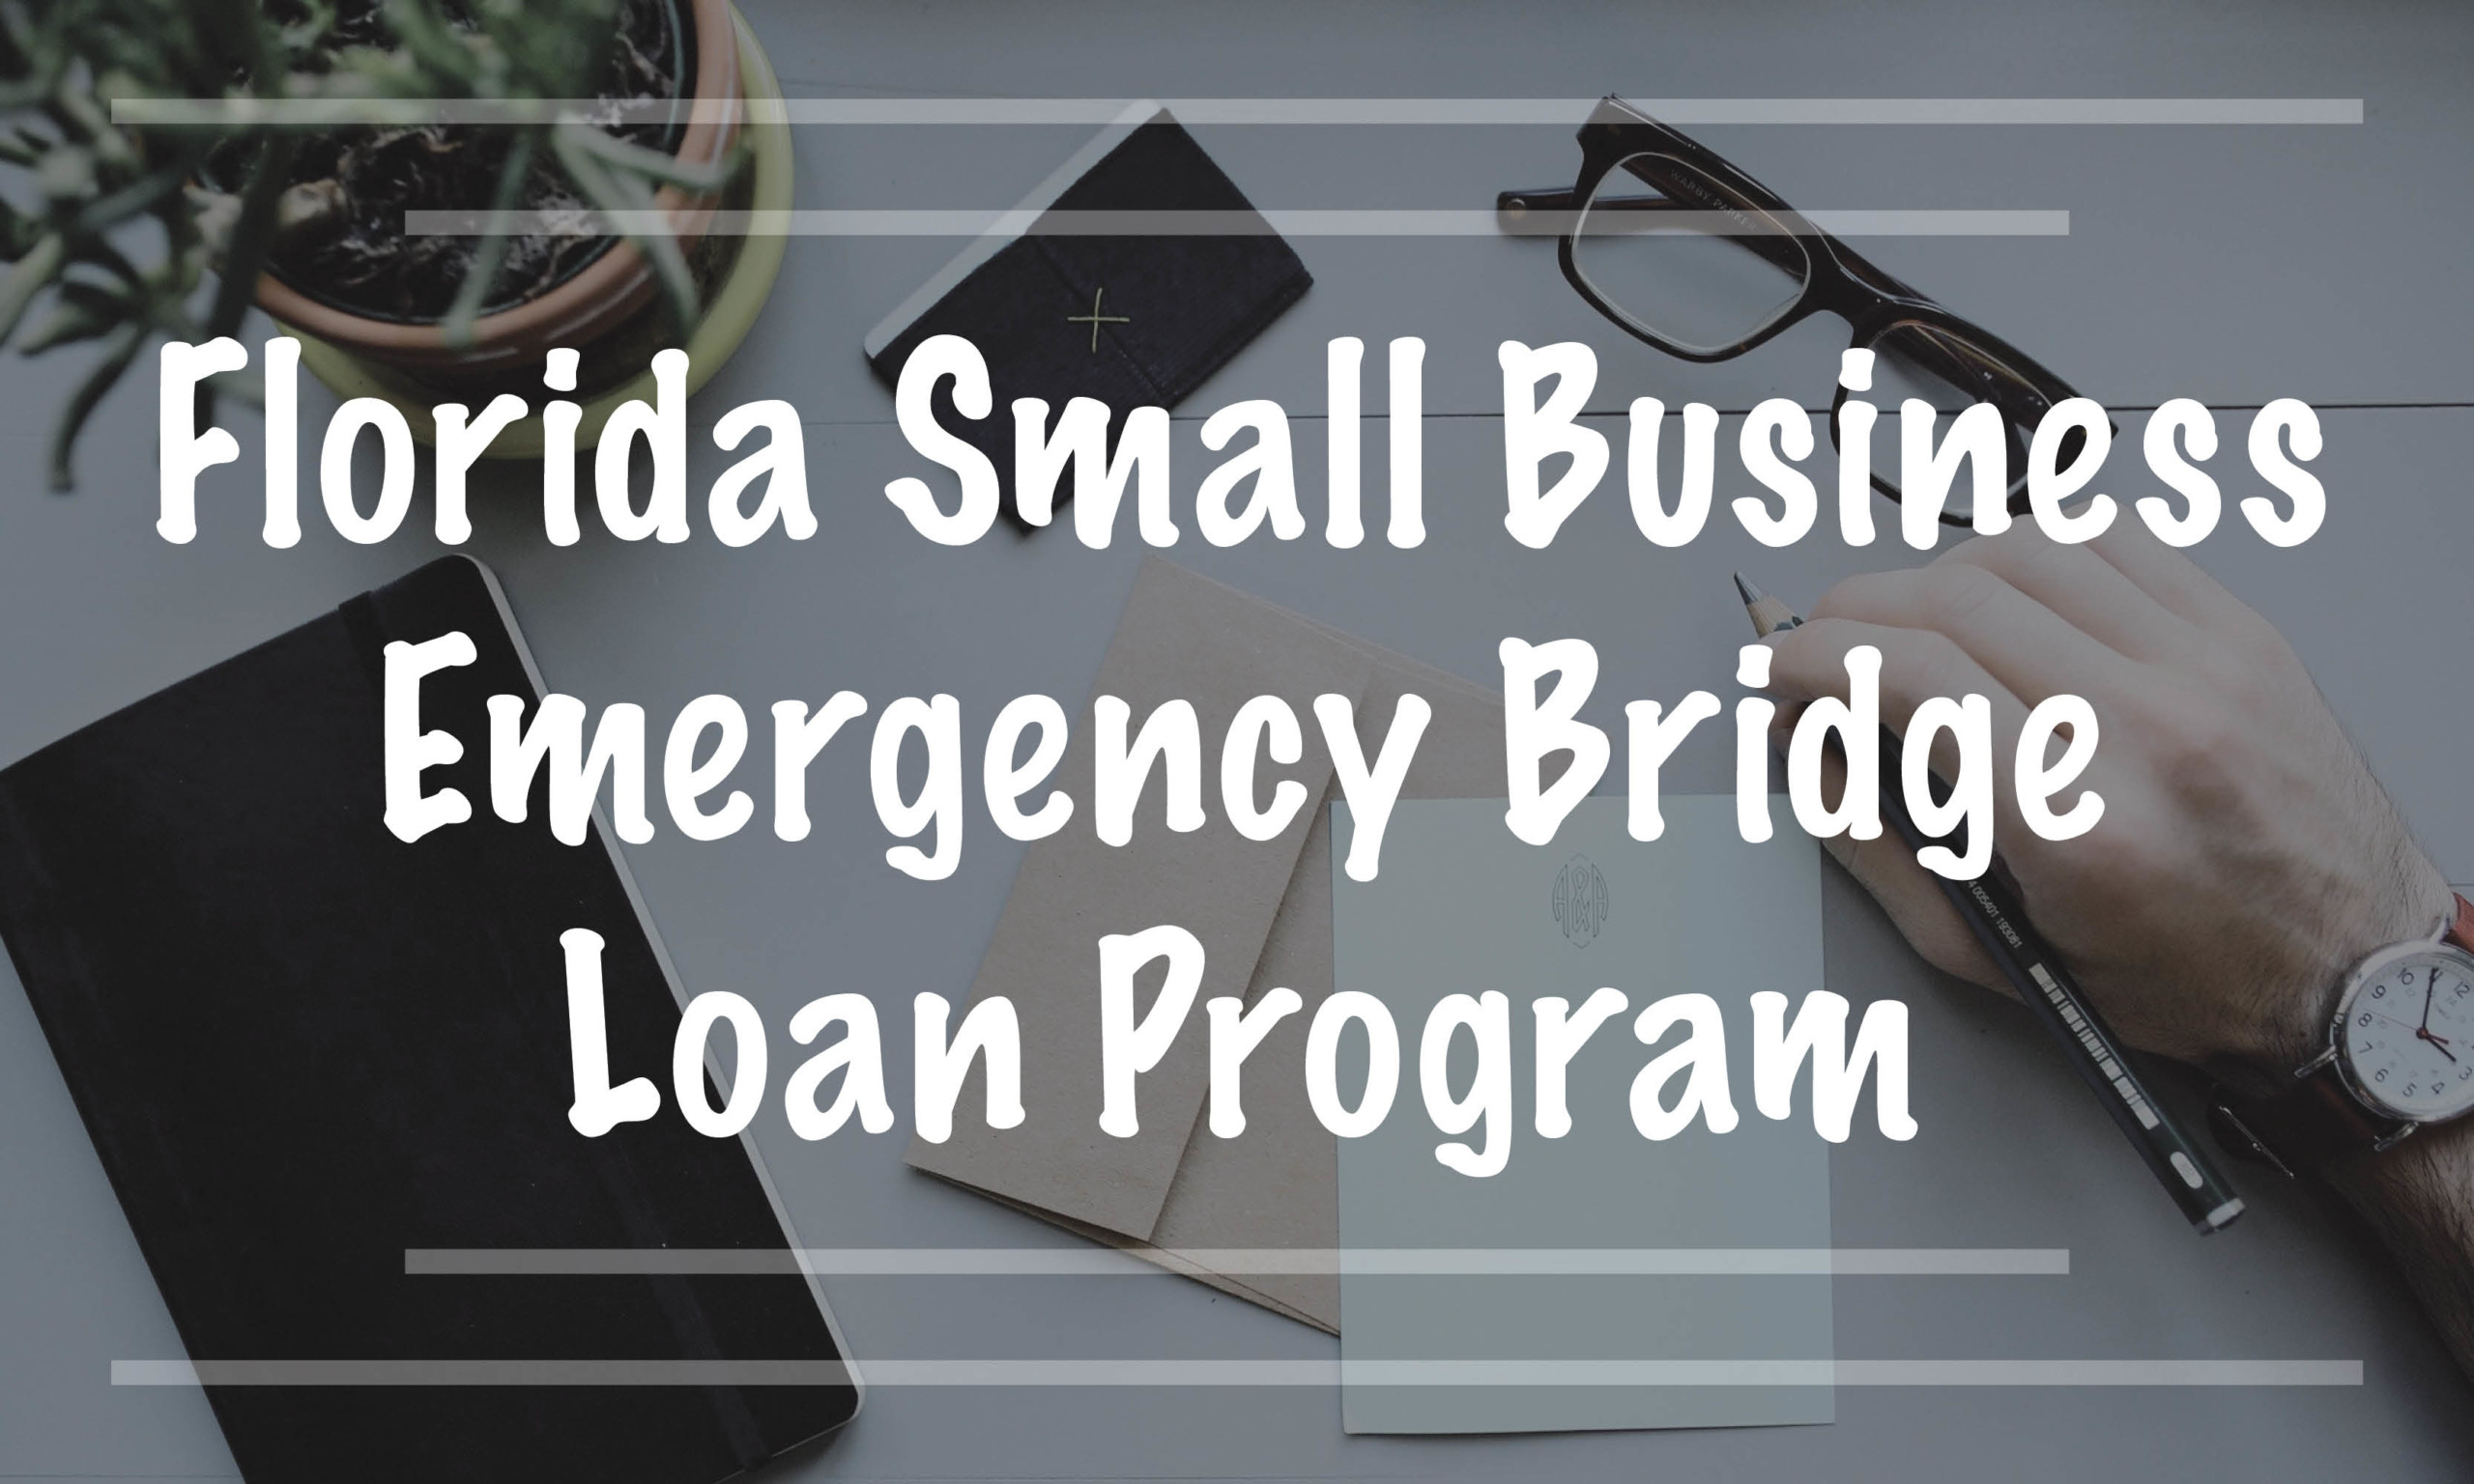 Florida Small Business Emergency Bridge Loan Program